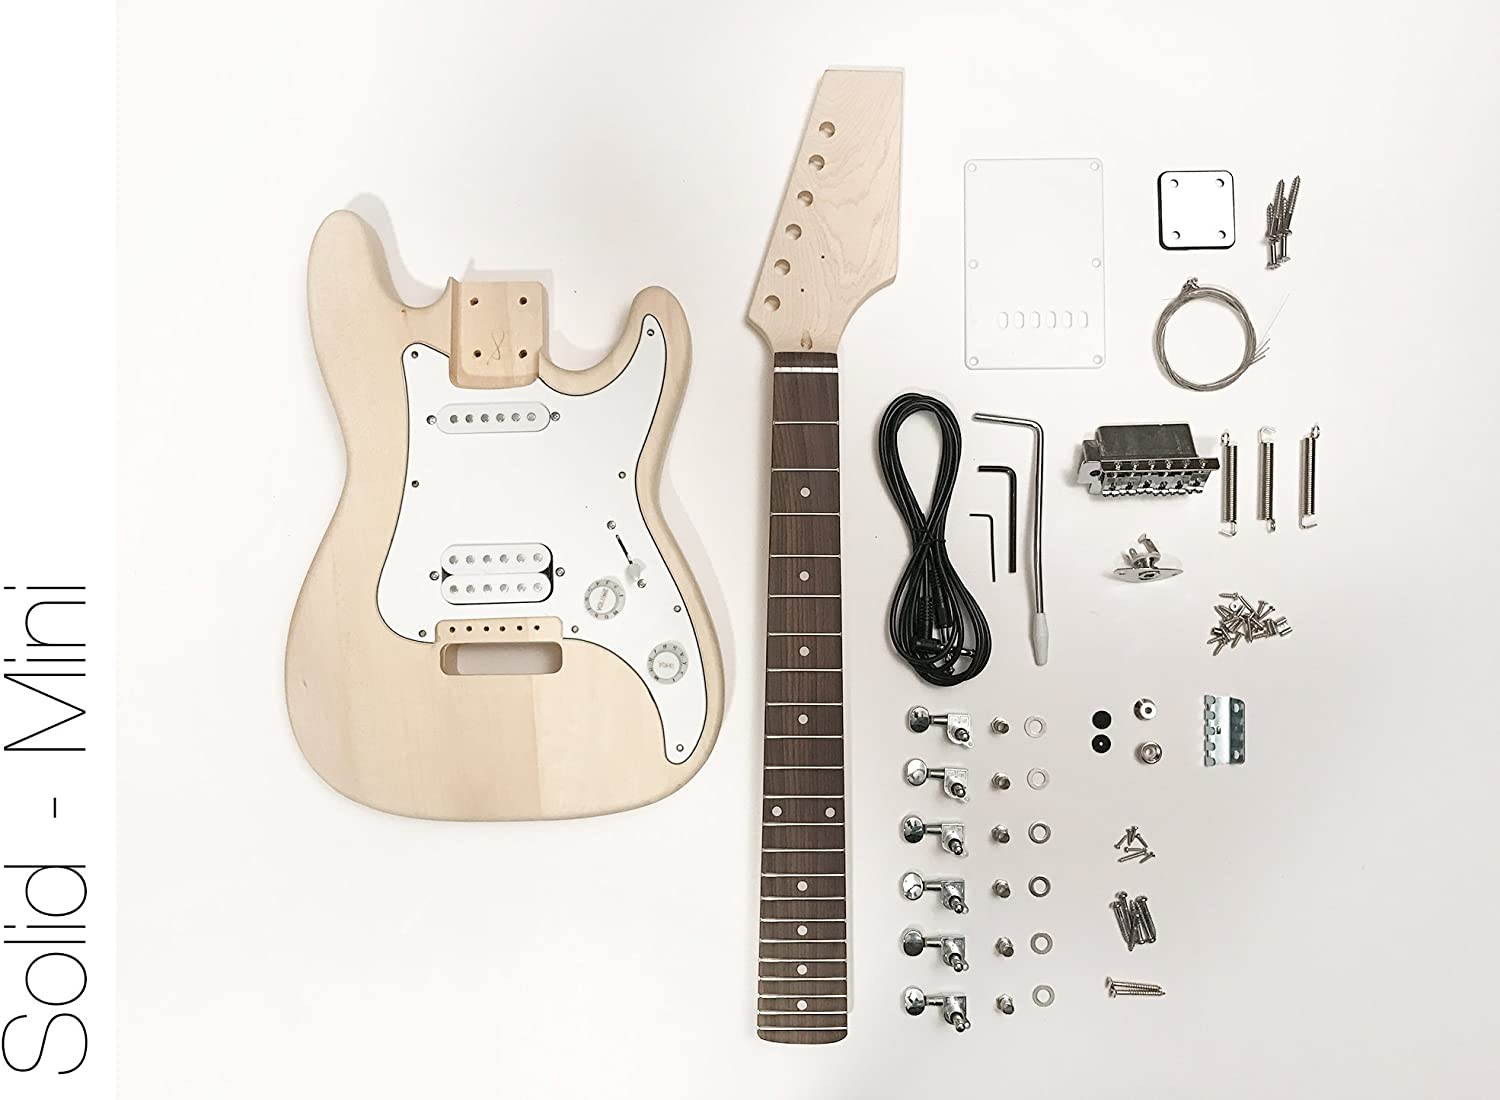 DIY – Kit de guitarra eléctrica (Mini Strat estilo construir tu ...